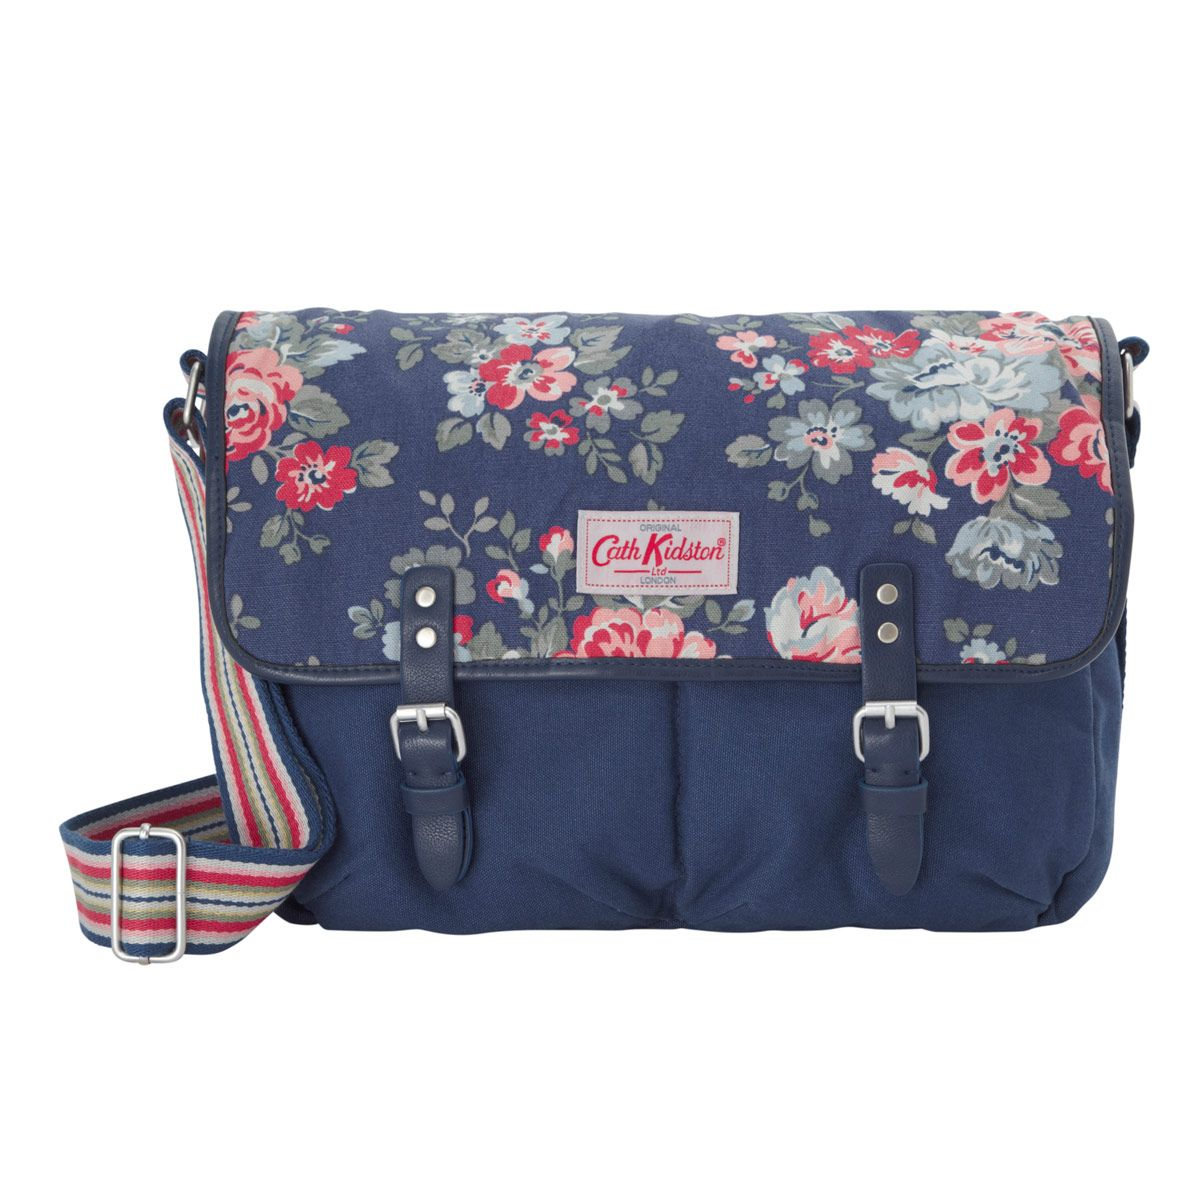 Cross Body Bags | Pembridge Rose Cotton Saddle Bag | CathKidston ...